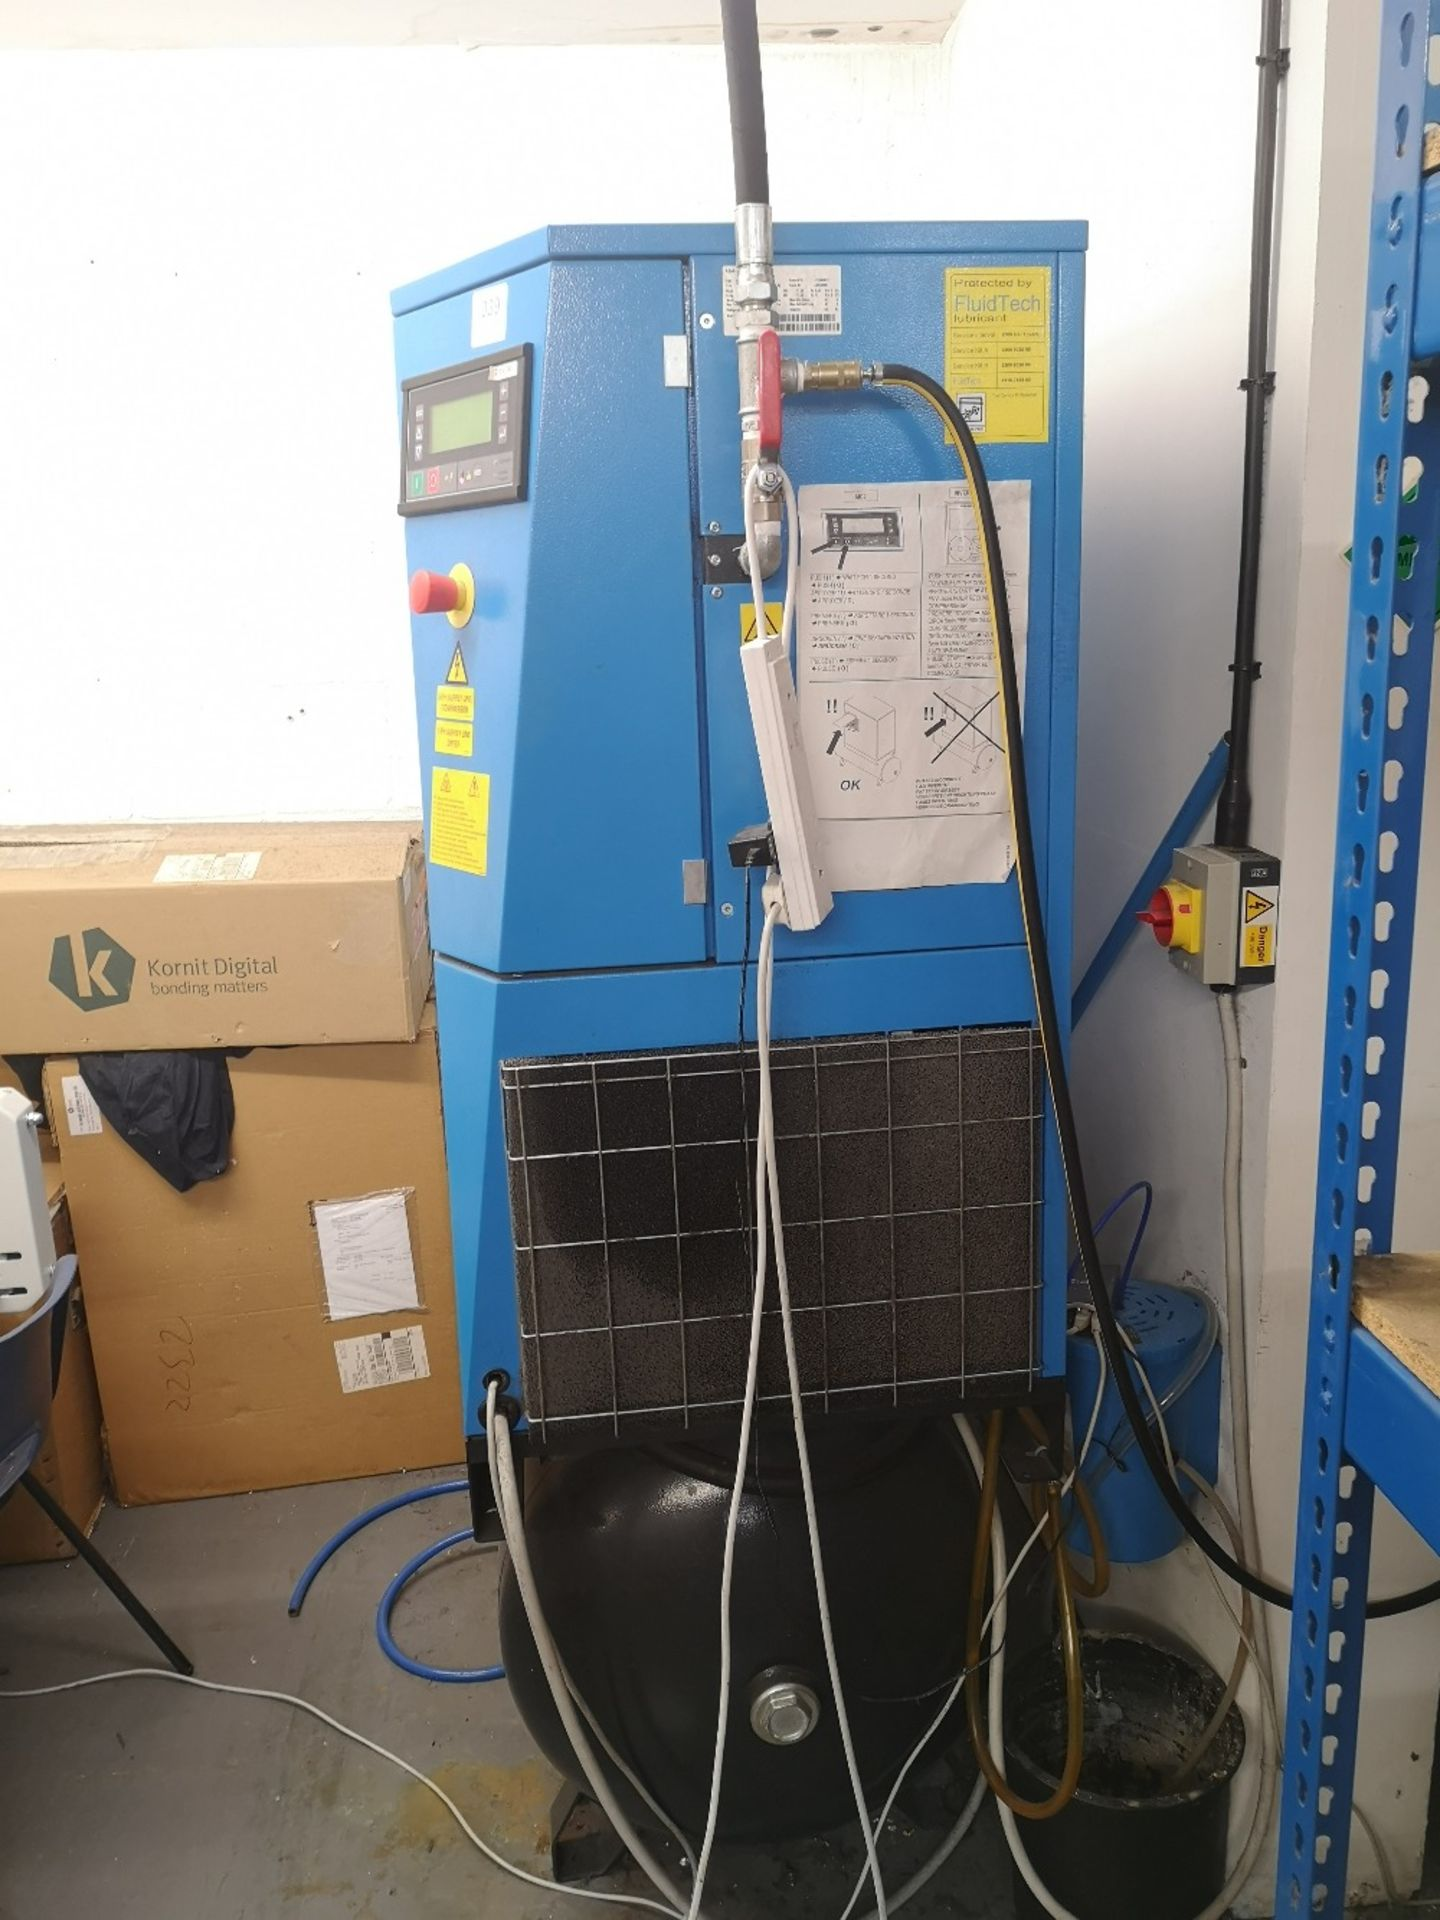 ABAC GENESIS 11 270 Variable Speed Rotary Screw Air Compressor - Image 2 of 6